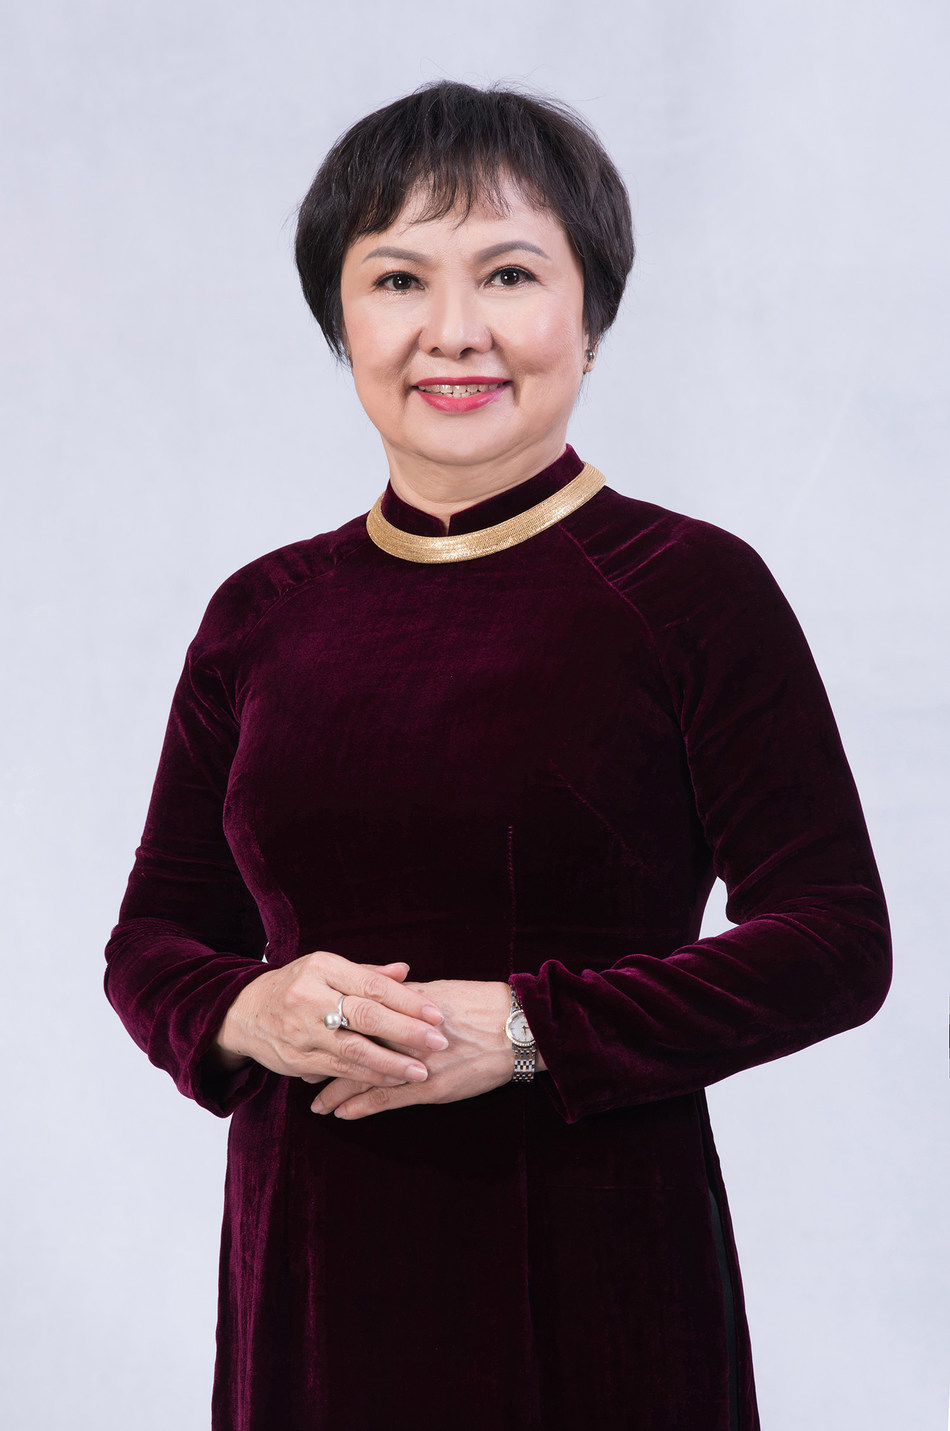 Cao Thi Ngoc Dung, Founder and Chairperson of PNJ